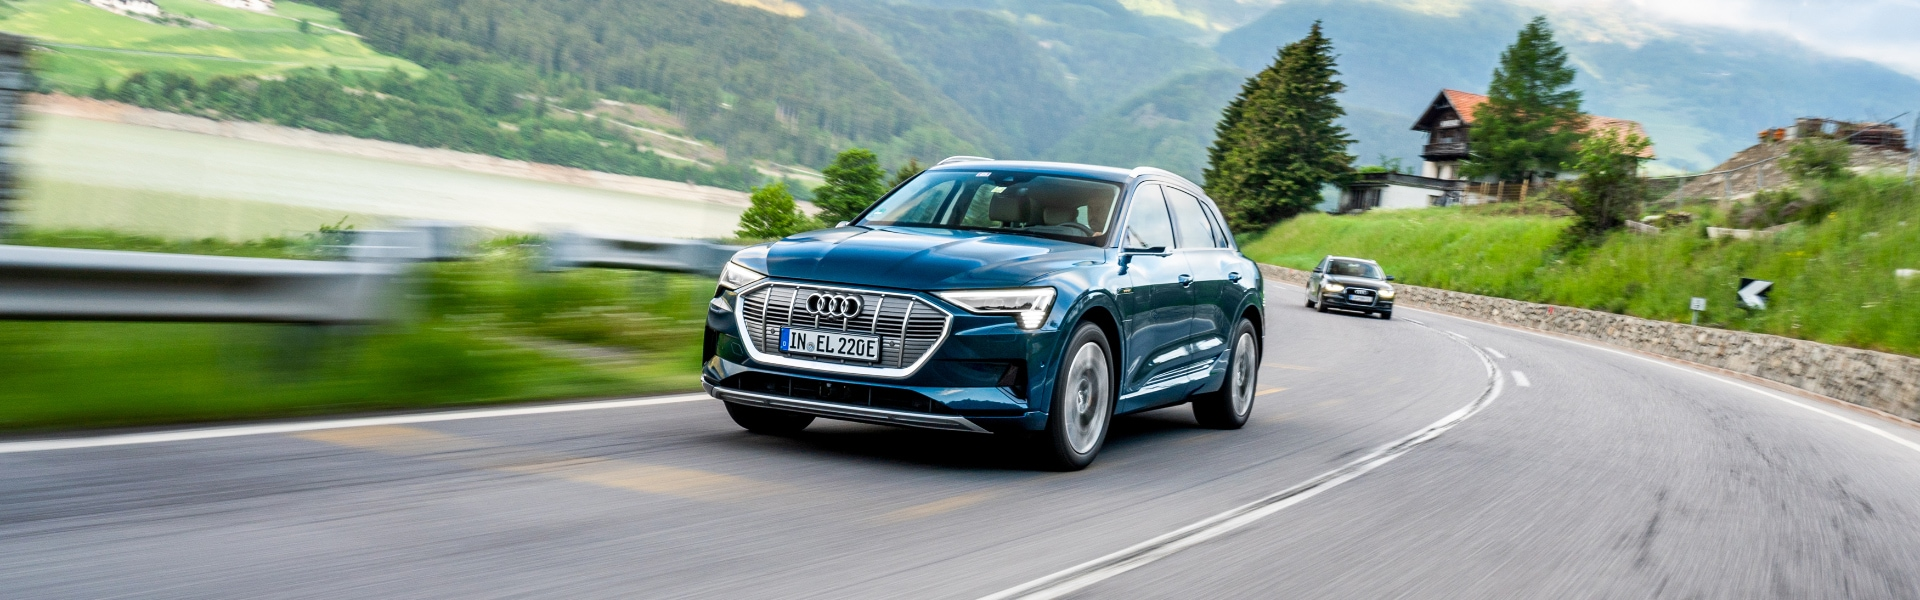 Borderless e-mobility: through Europe with the Audi e-tron